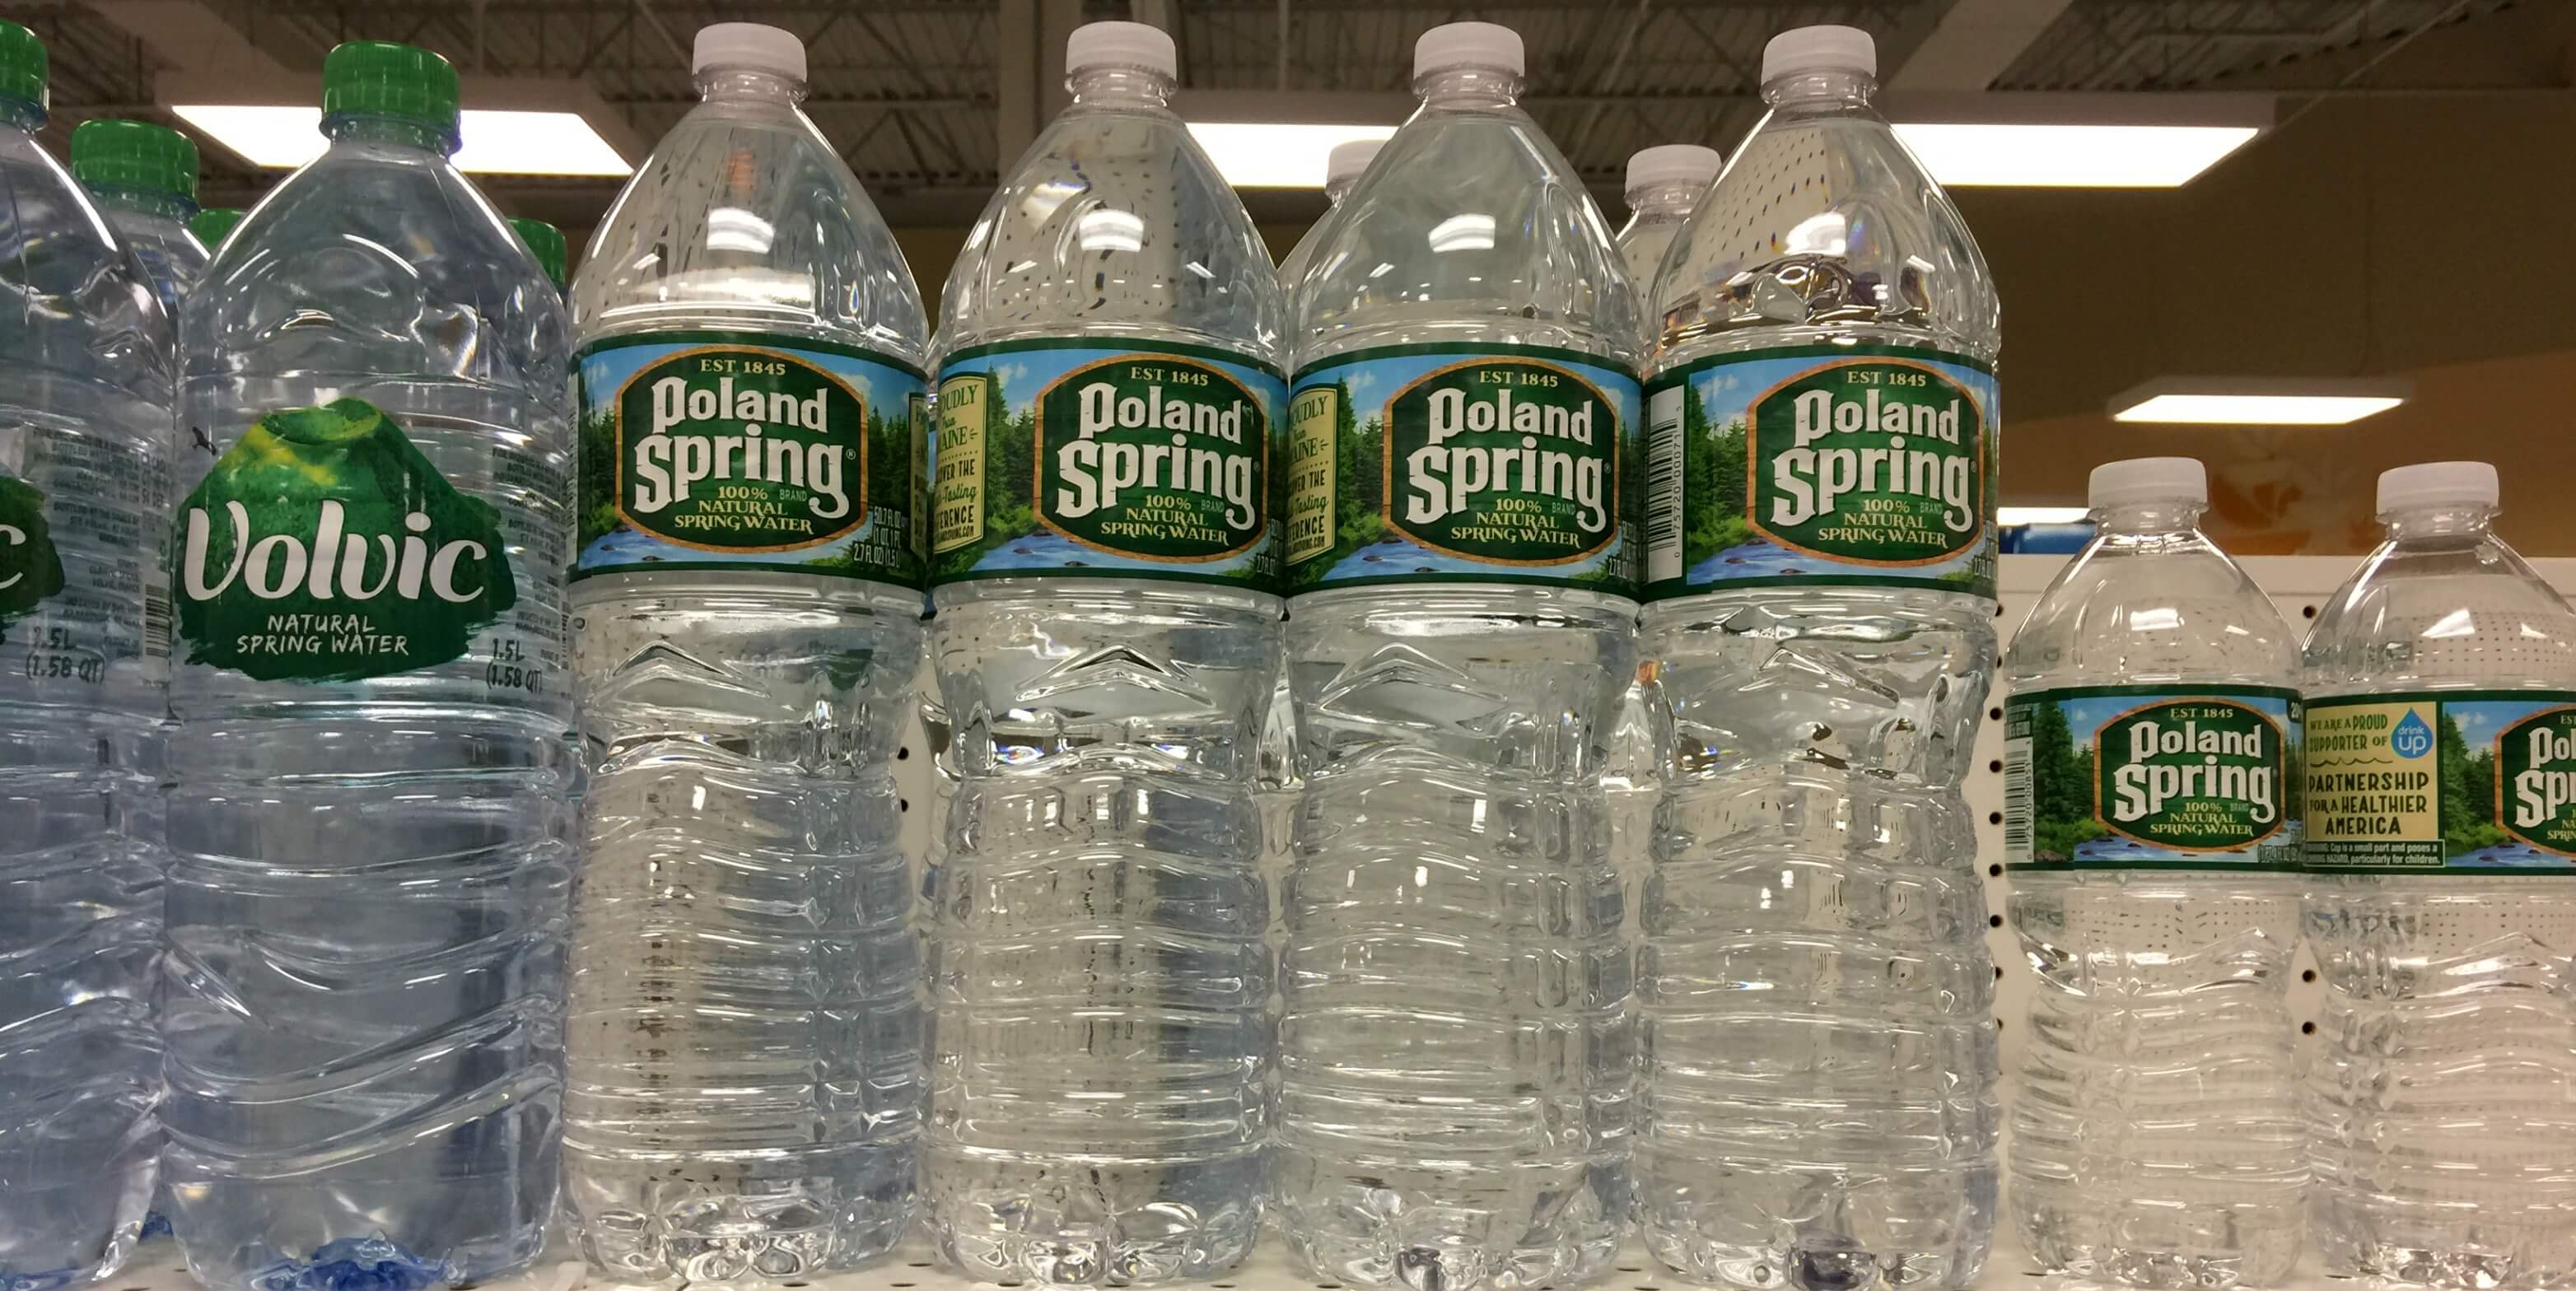 poland spring 1 liter bottles just  0 33 at shoprite